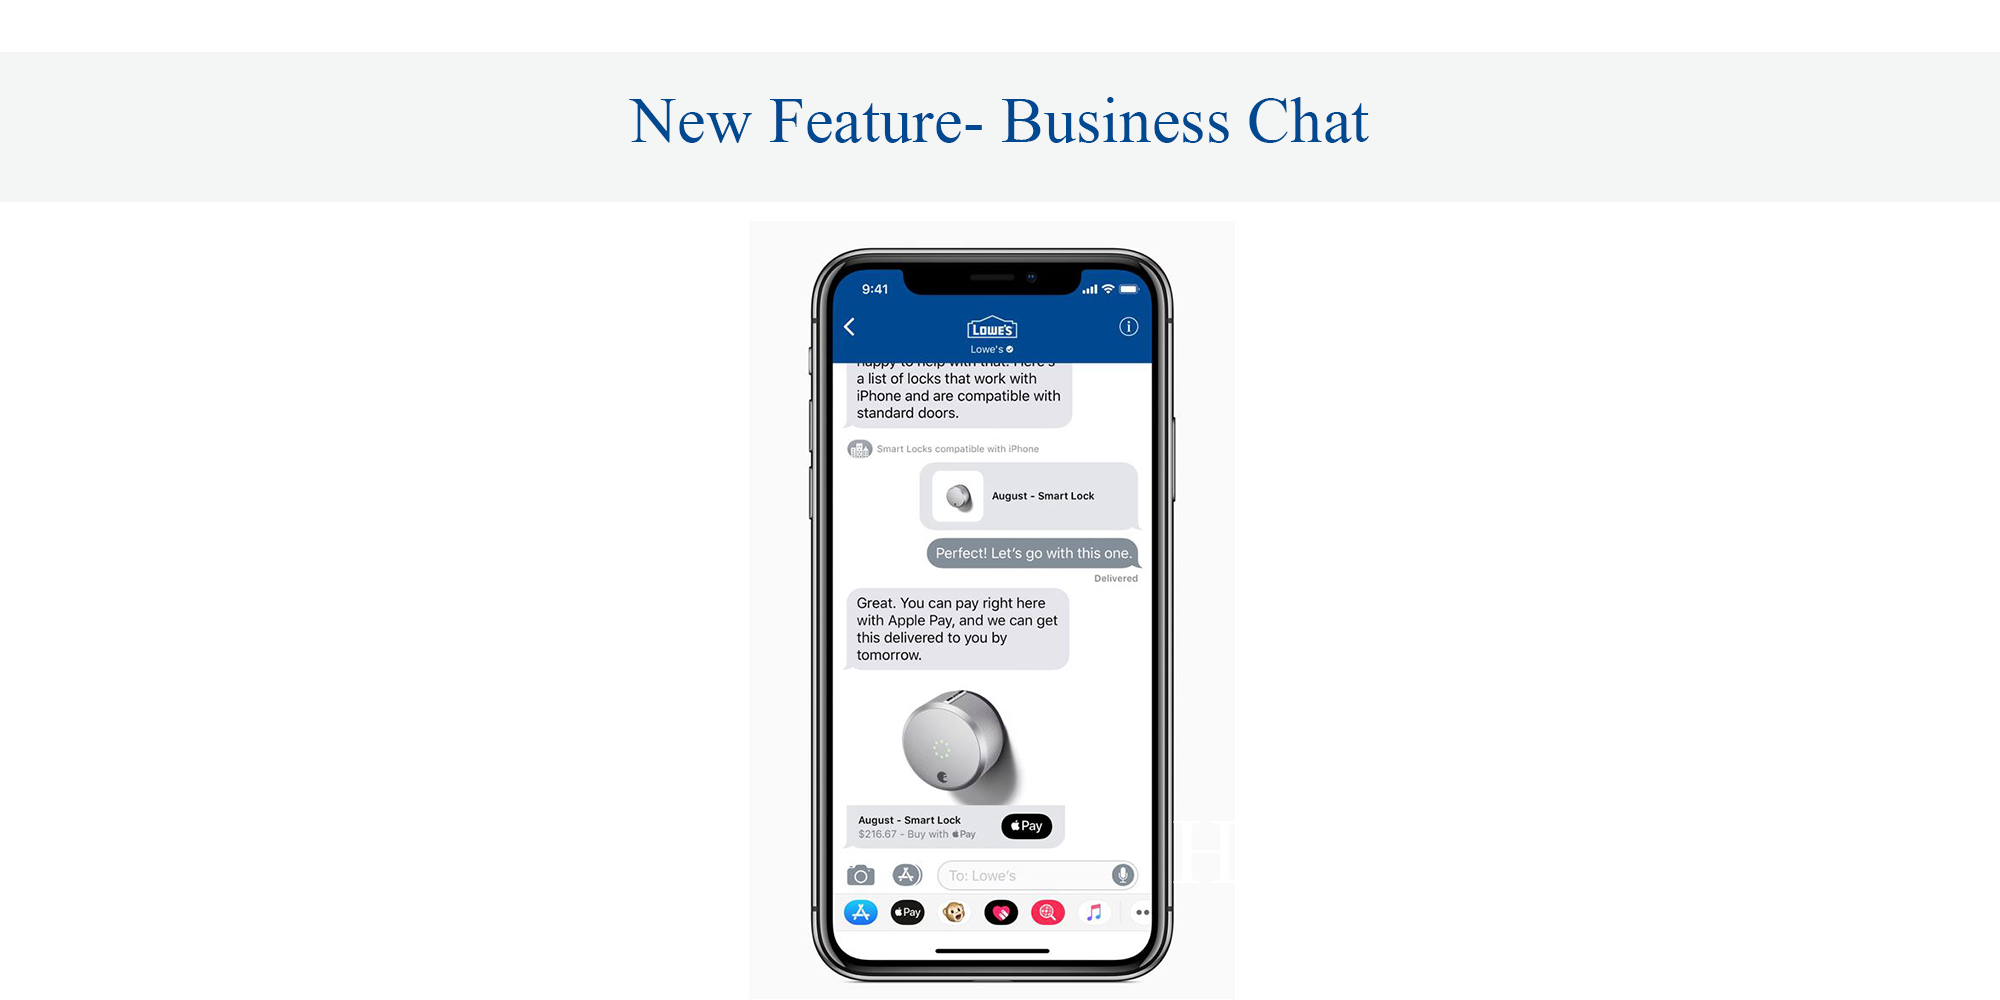 New Feature- Business Chat